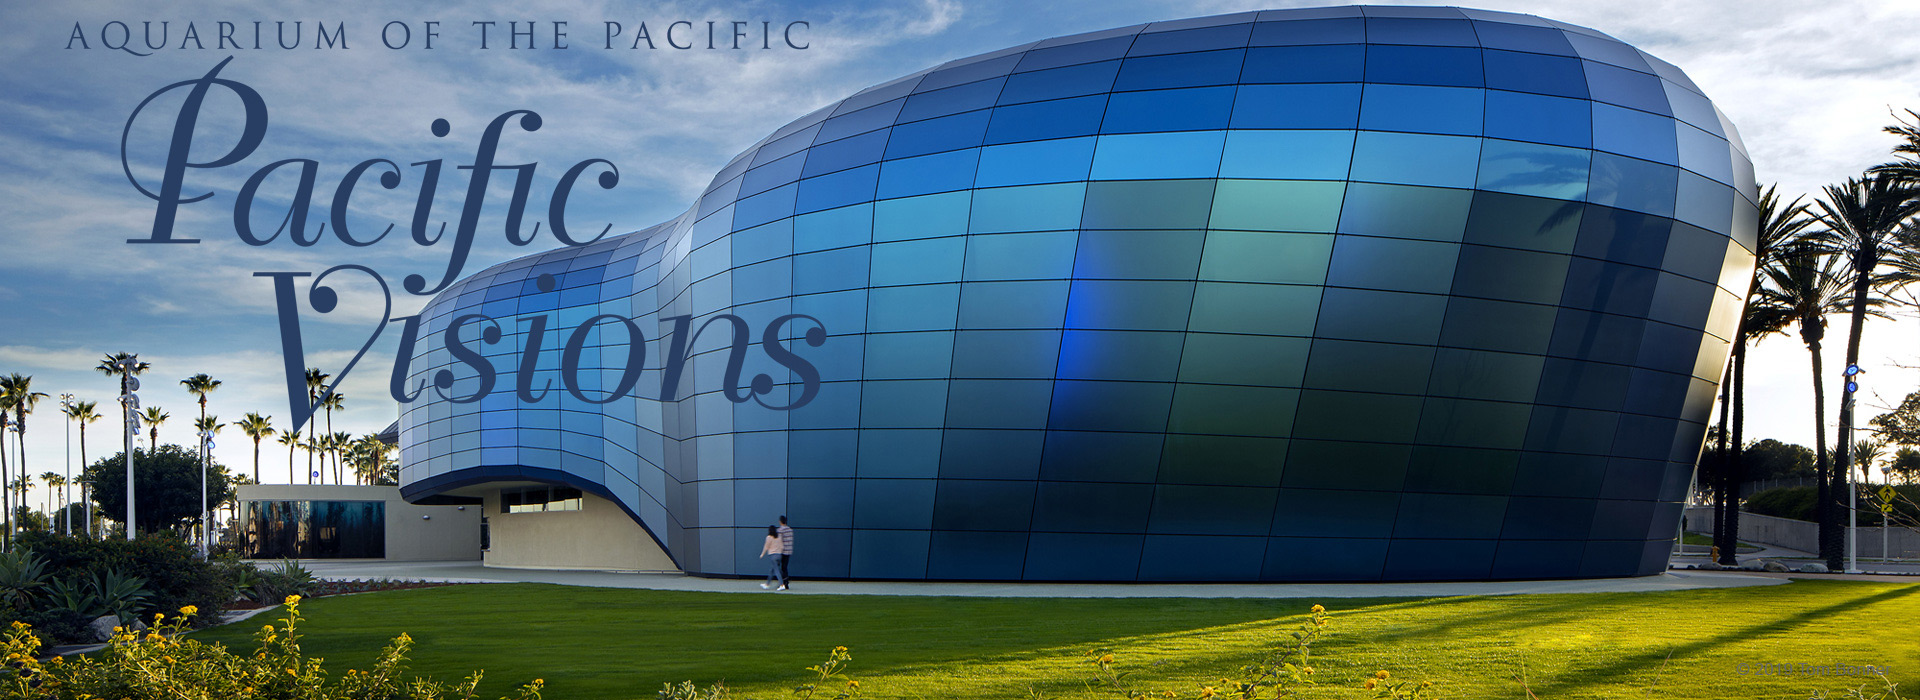 The stunning glass building at Aquarium of the Pacific